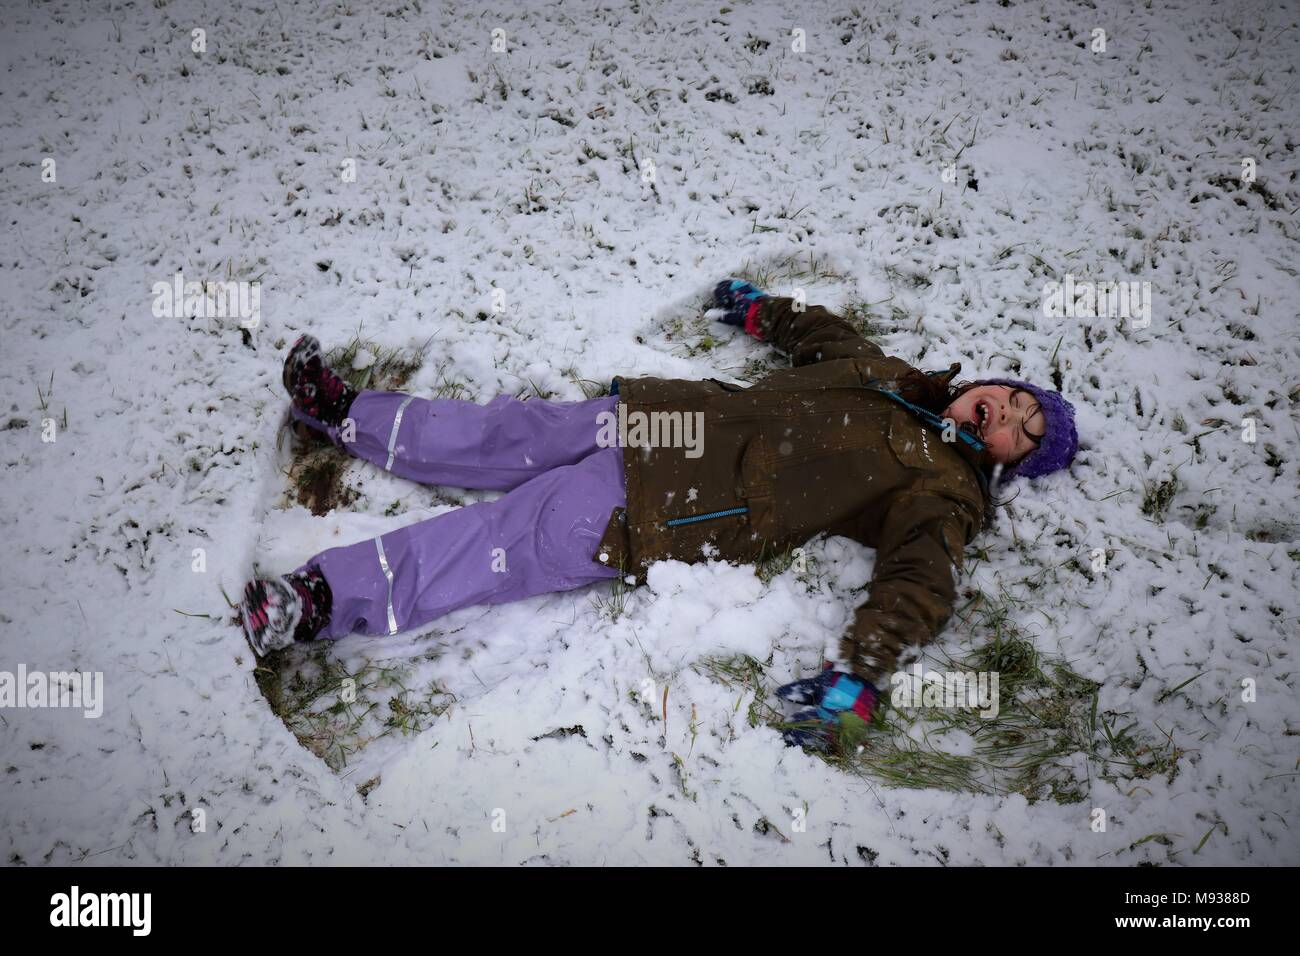 A Red Cheeked Child Making Snow Angels - Stock Image